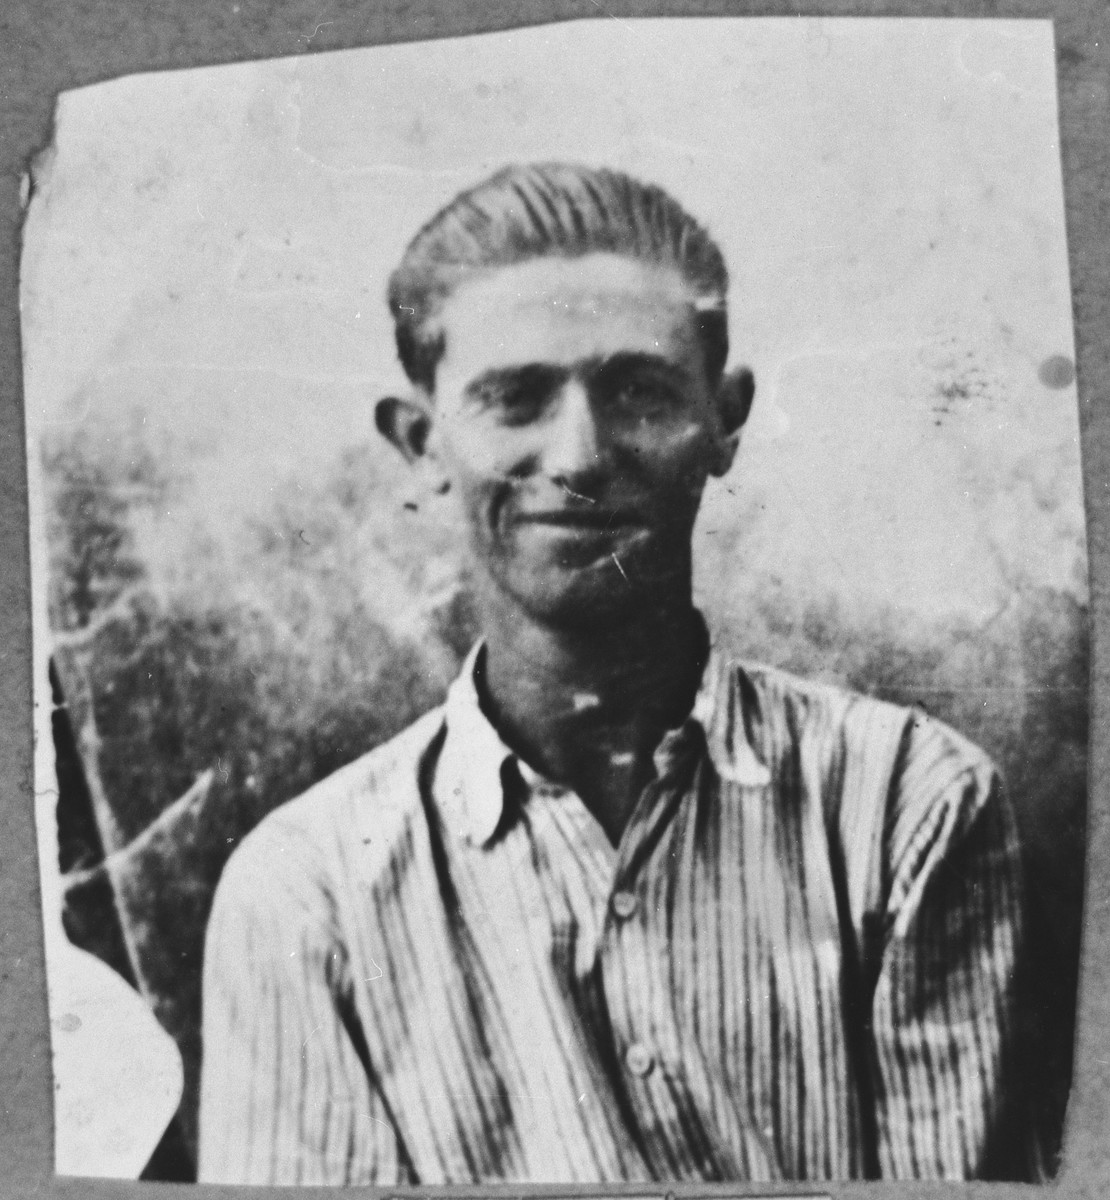 Portrait of Mois Koen, son of Mordechai Koen.  He was a laborer.  He lived at Sinagogina 8 in Bitola.